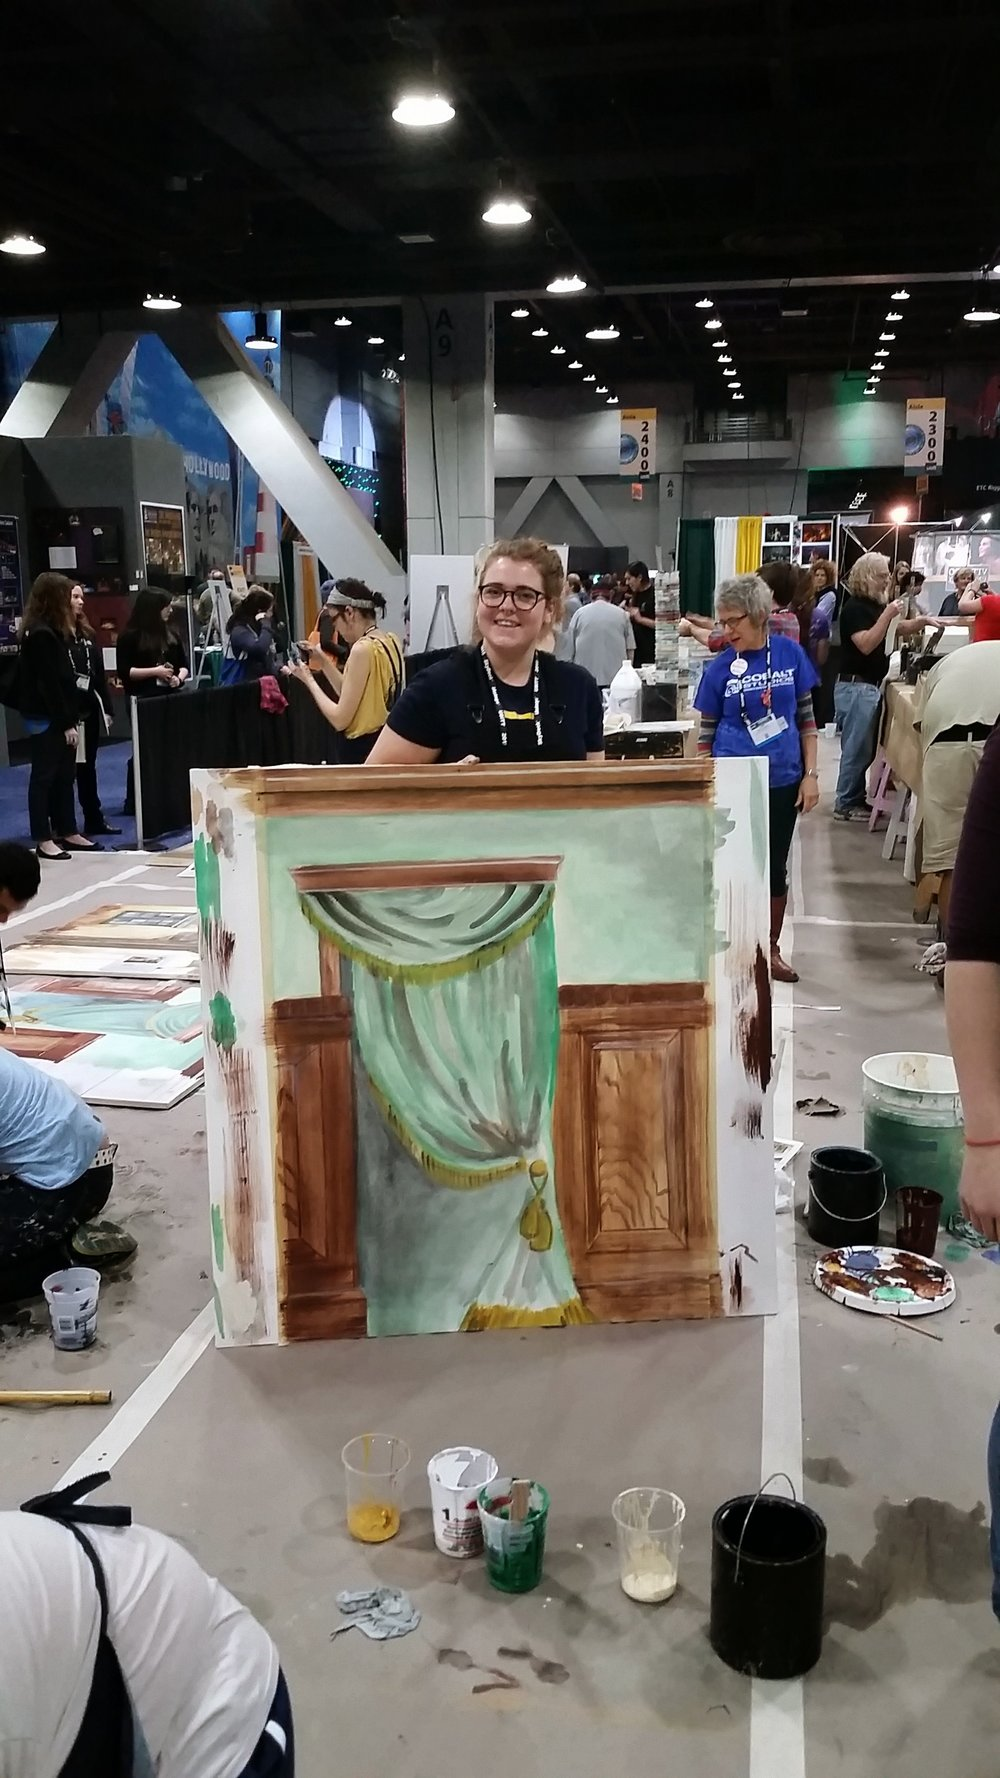 Becca Smith (2016) takes part in the scenic painting workshop at USITT 2015 Cincinnati.